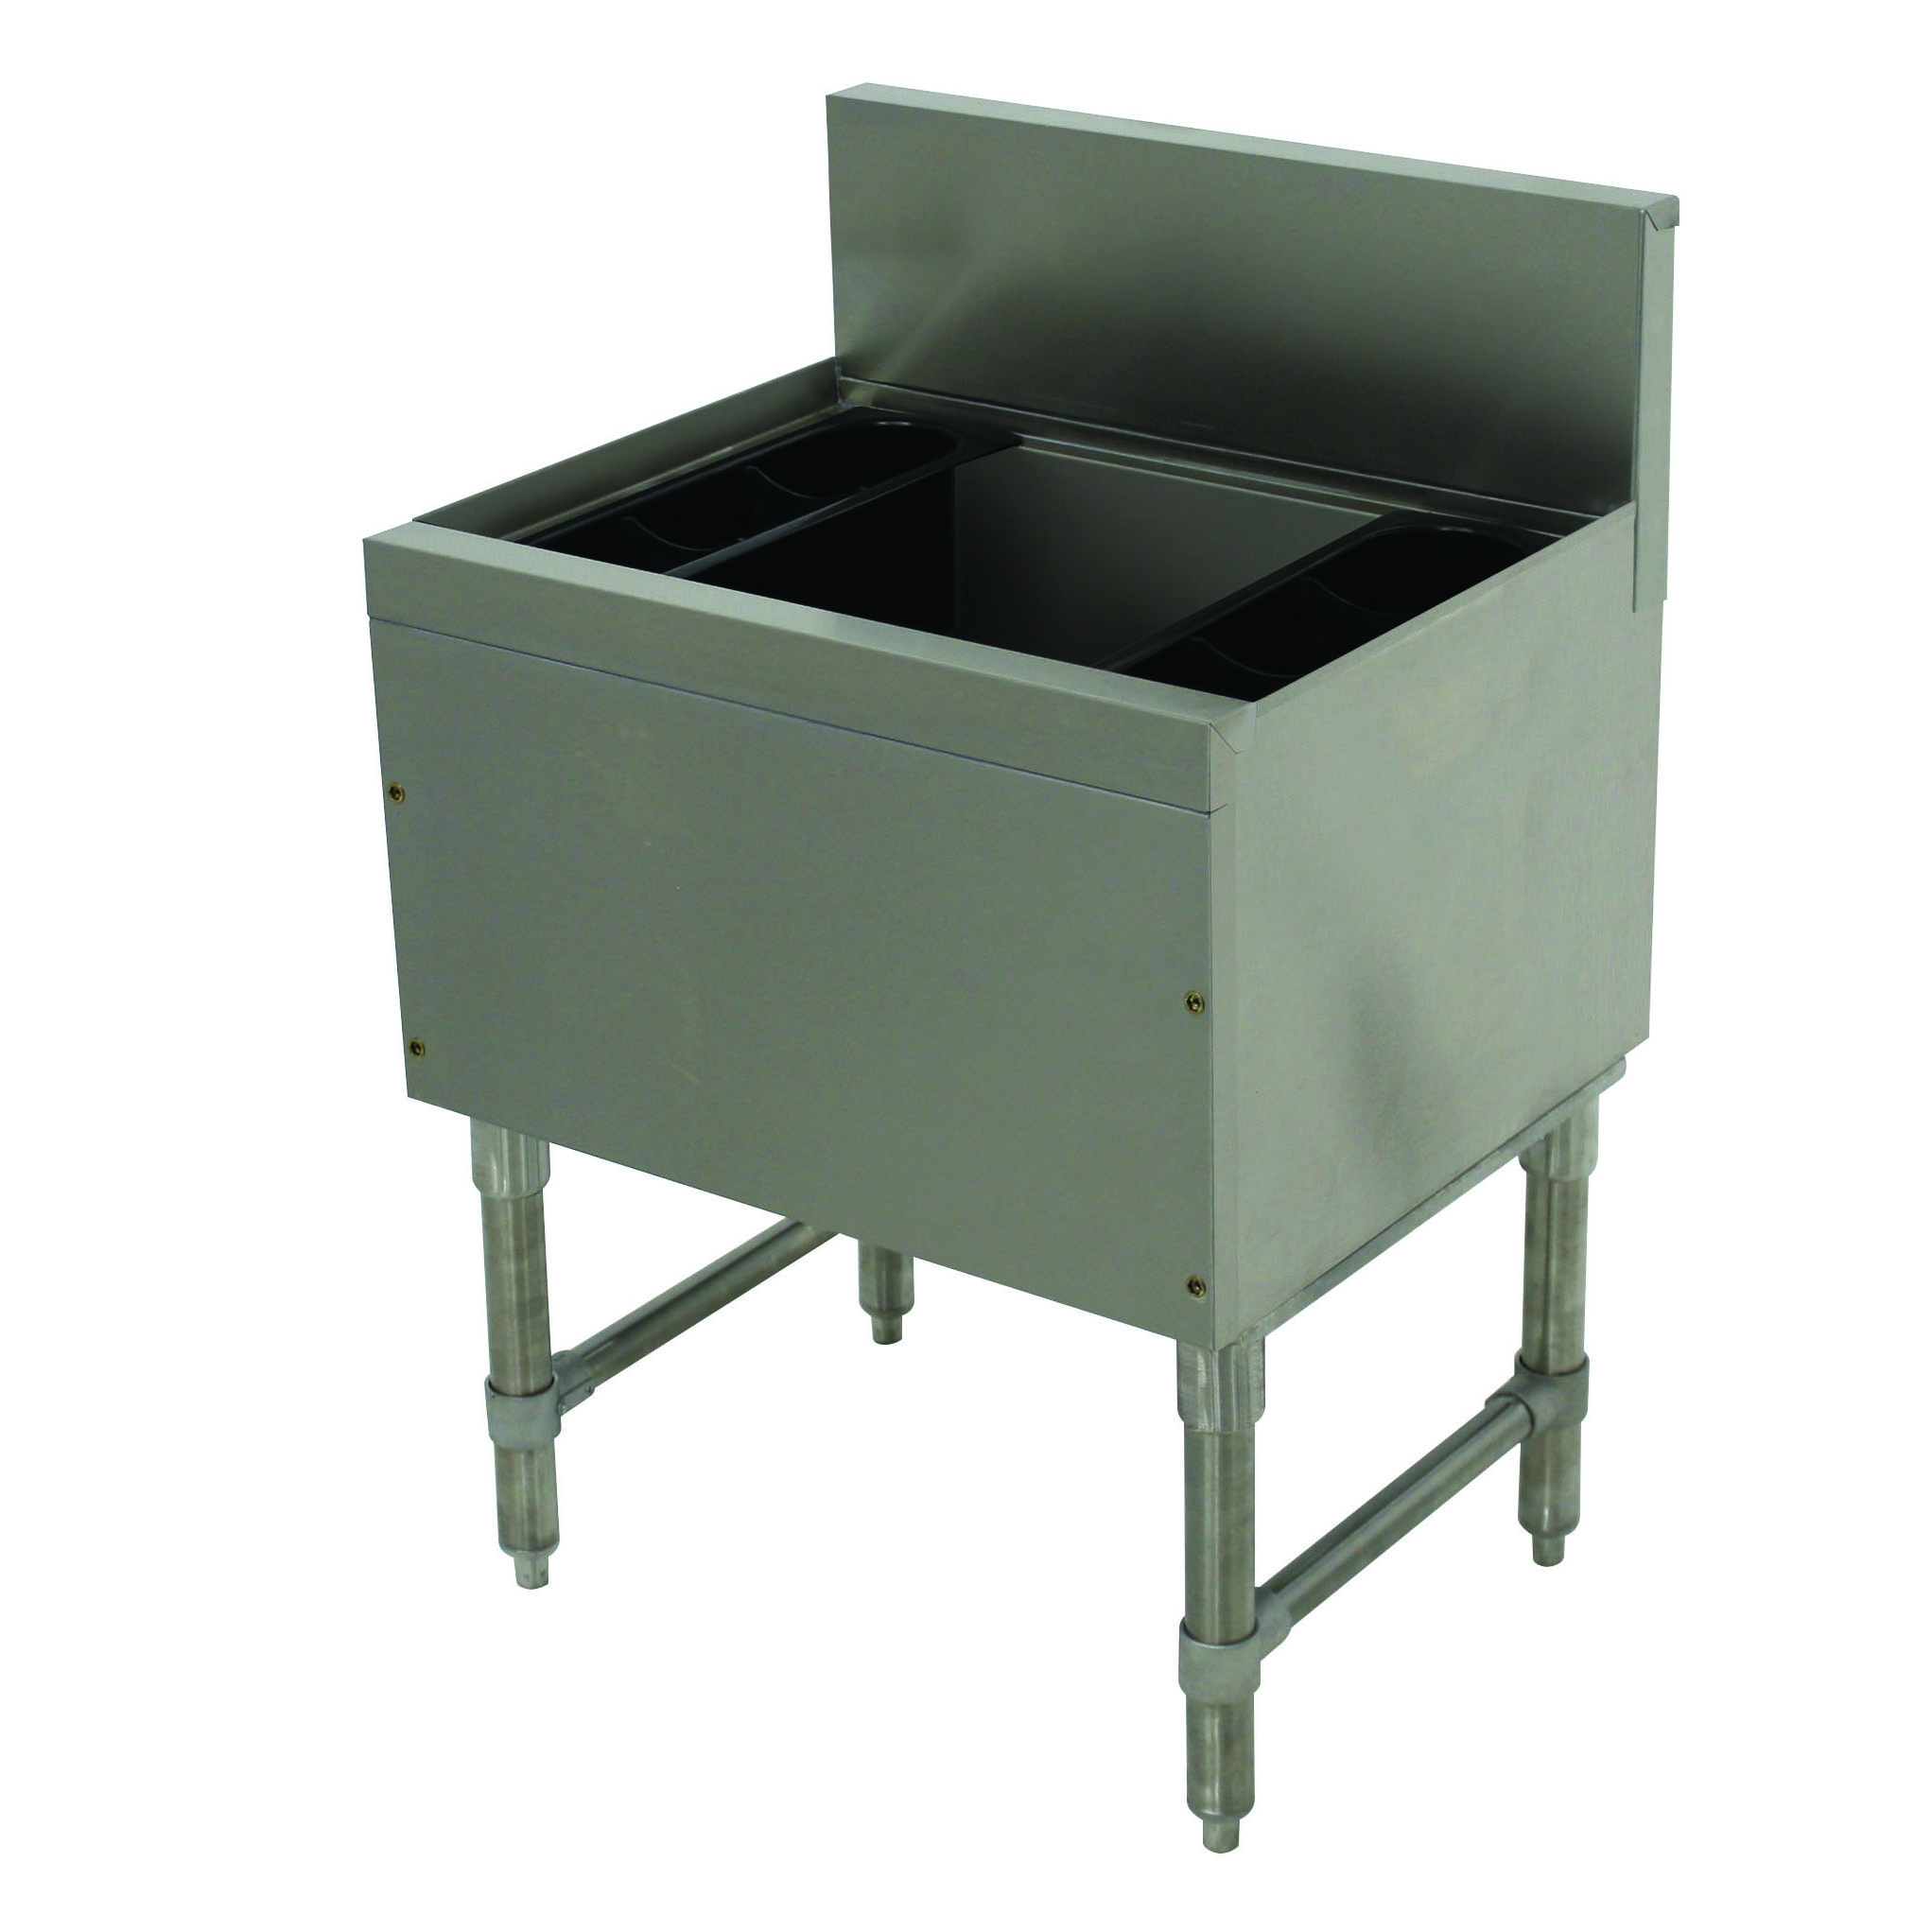 Advance Tabco PRI-19-30-10 underbar ice bin/cocktail unit